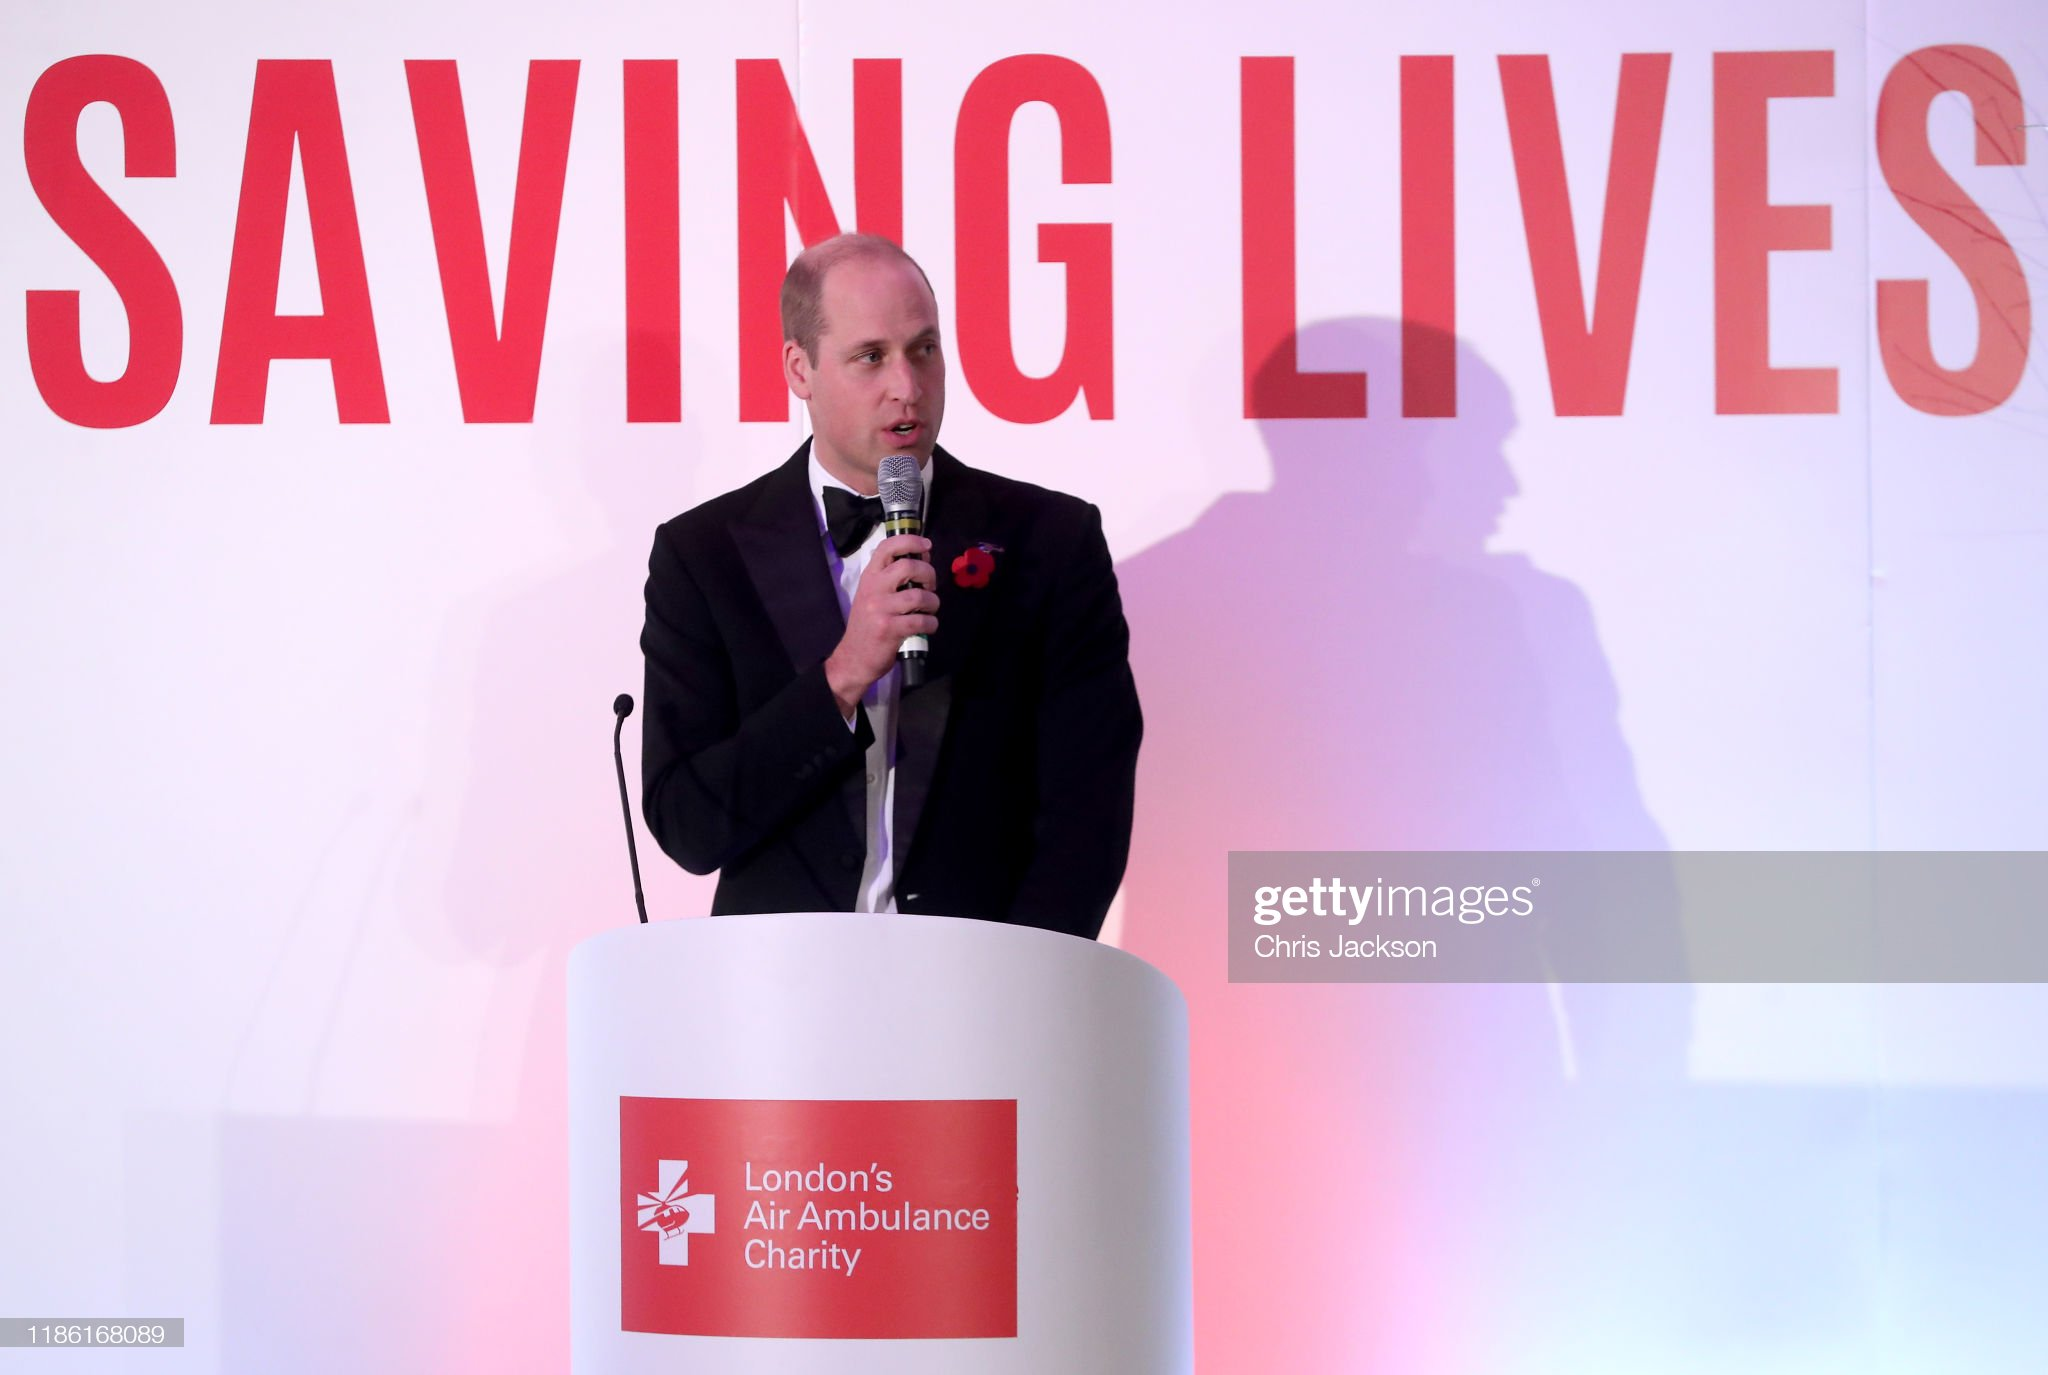 prince-william-duke-of-cambridge-makes-a-speech-as-he-attends-the-picture-id1186168089